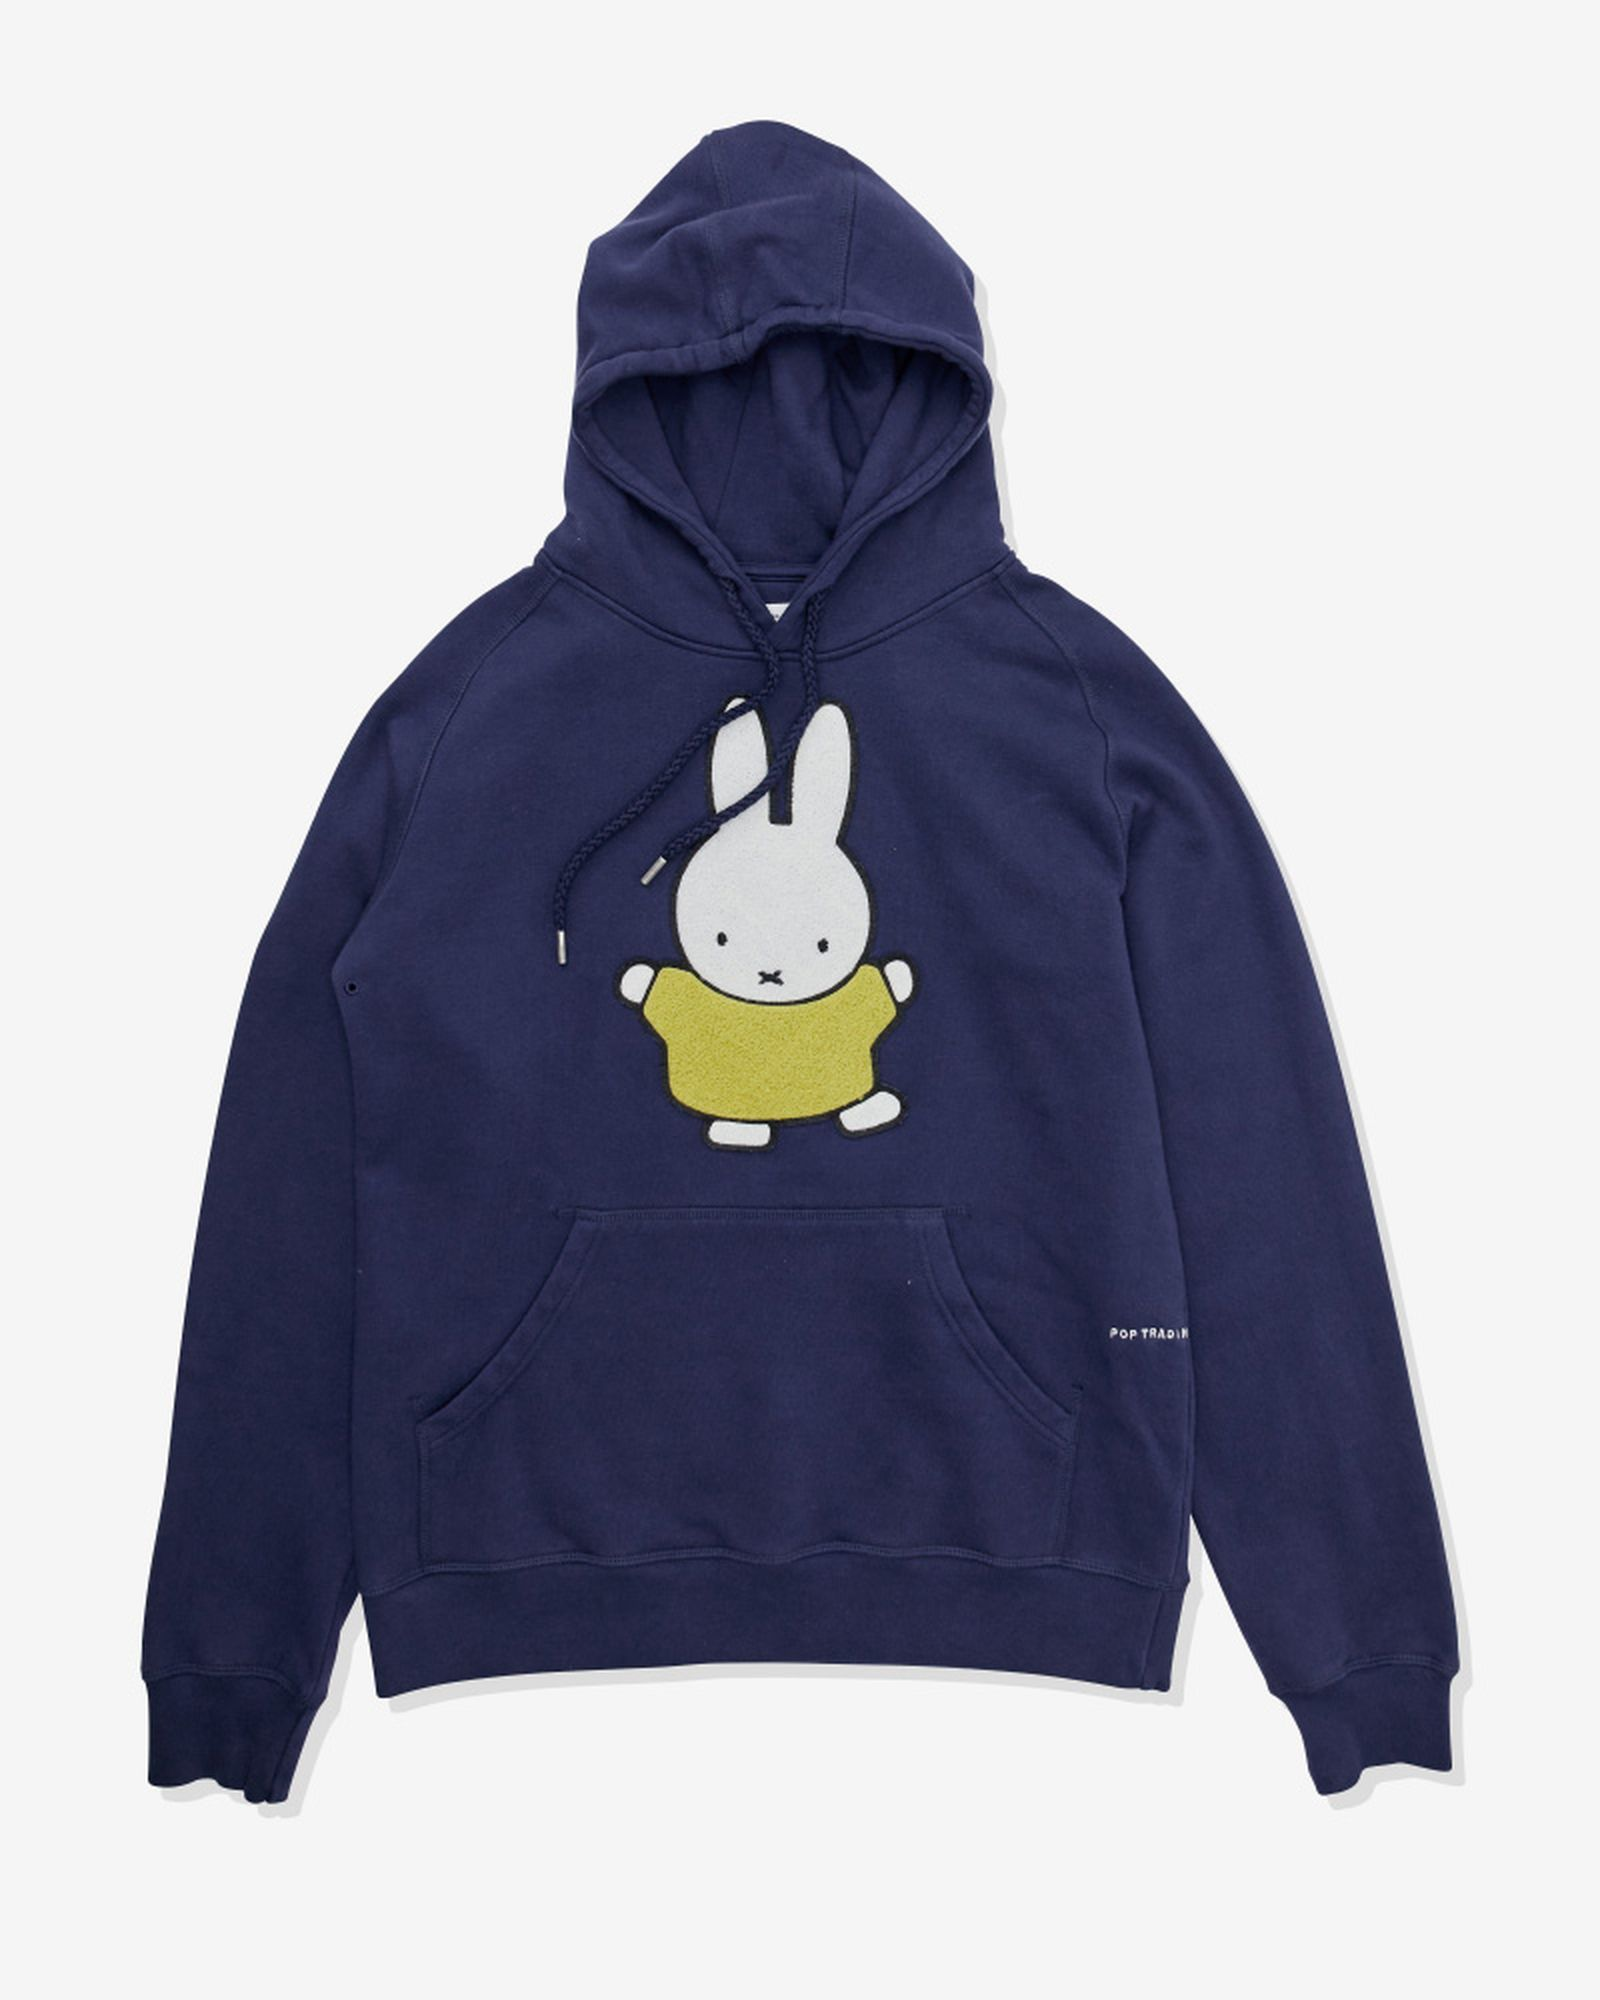 pop trading company miffy Pop Trading Co. collaboration